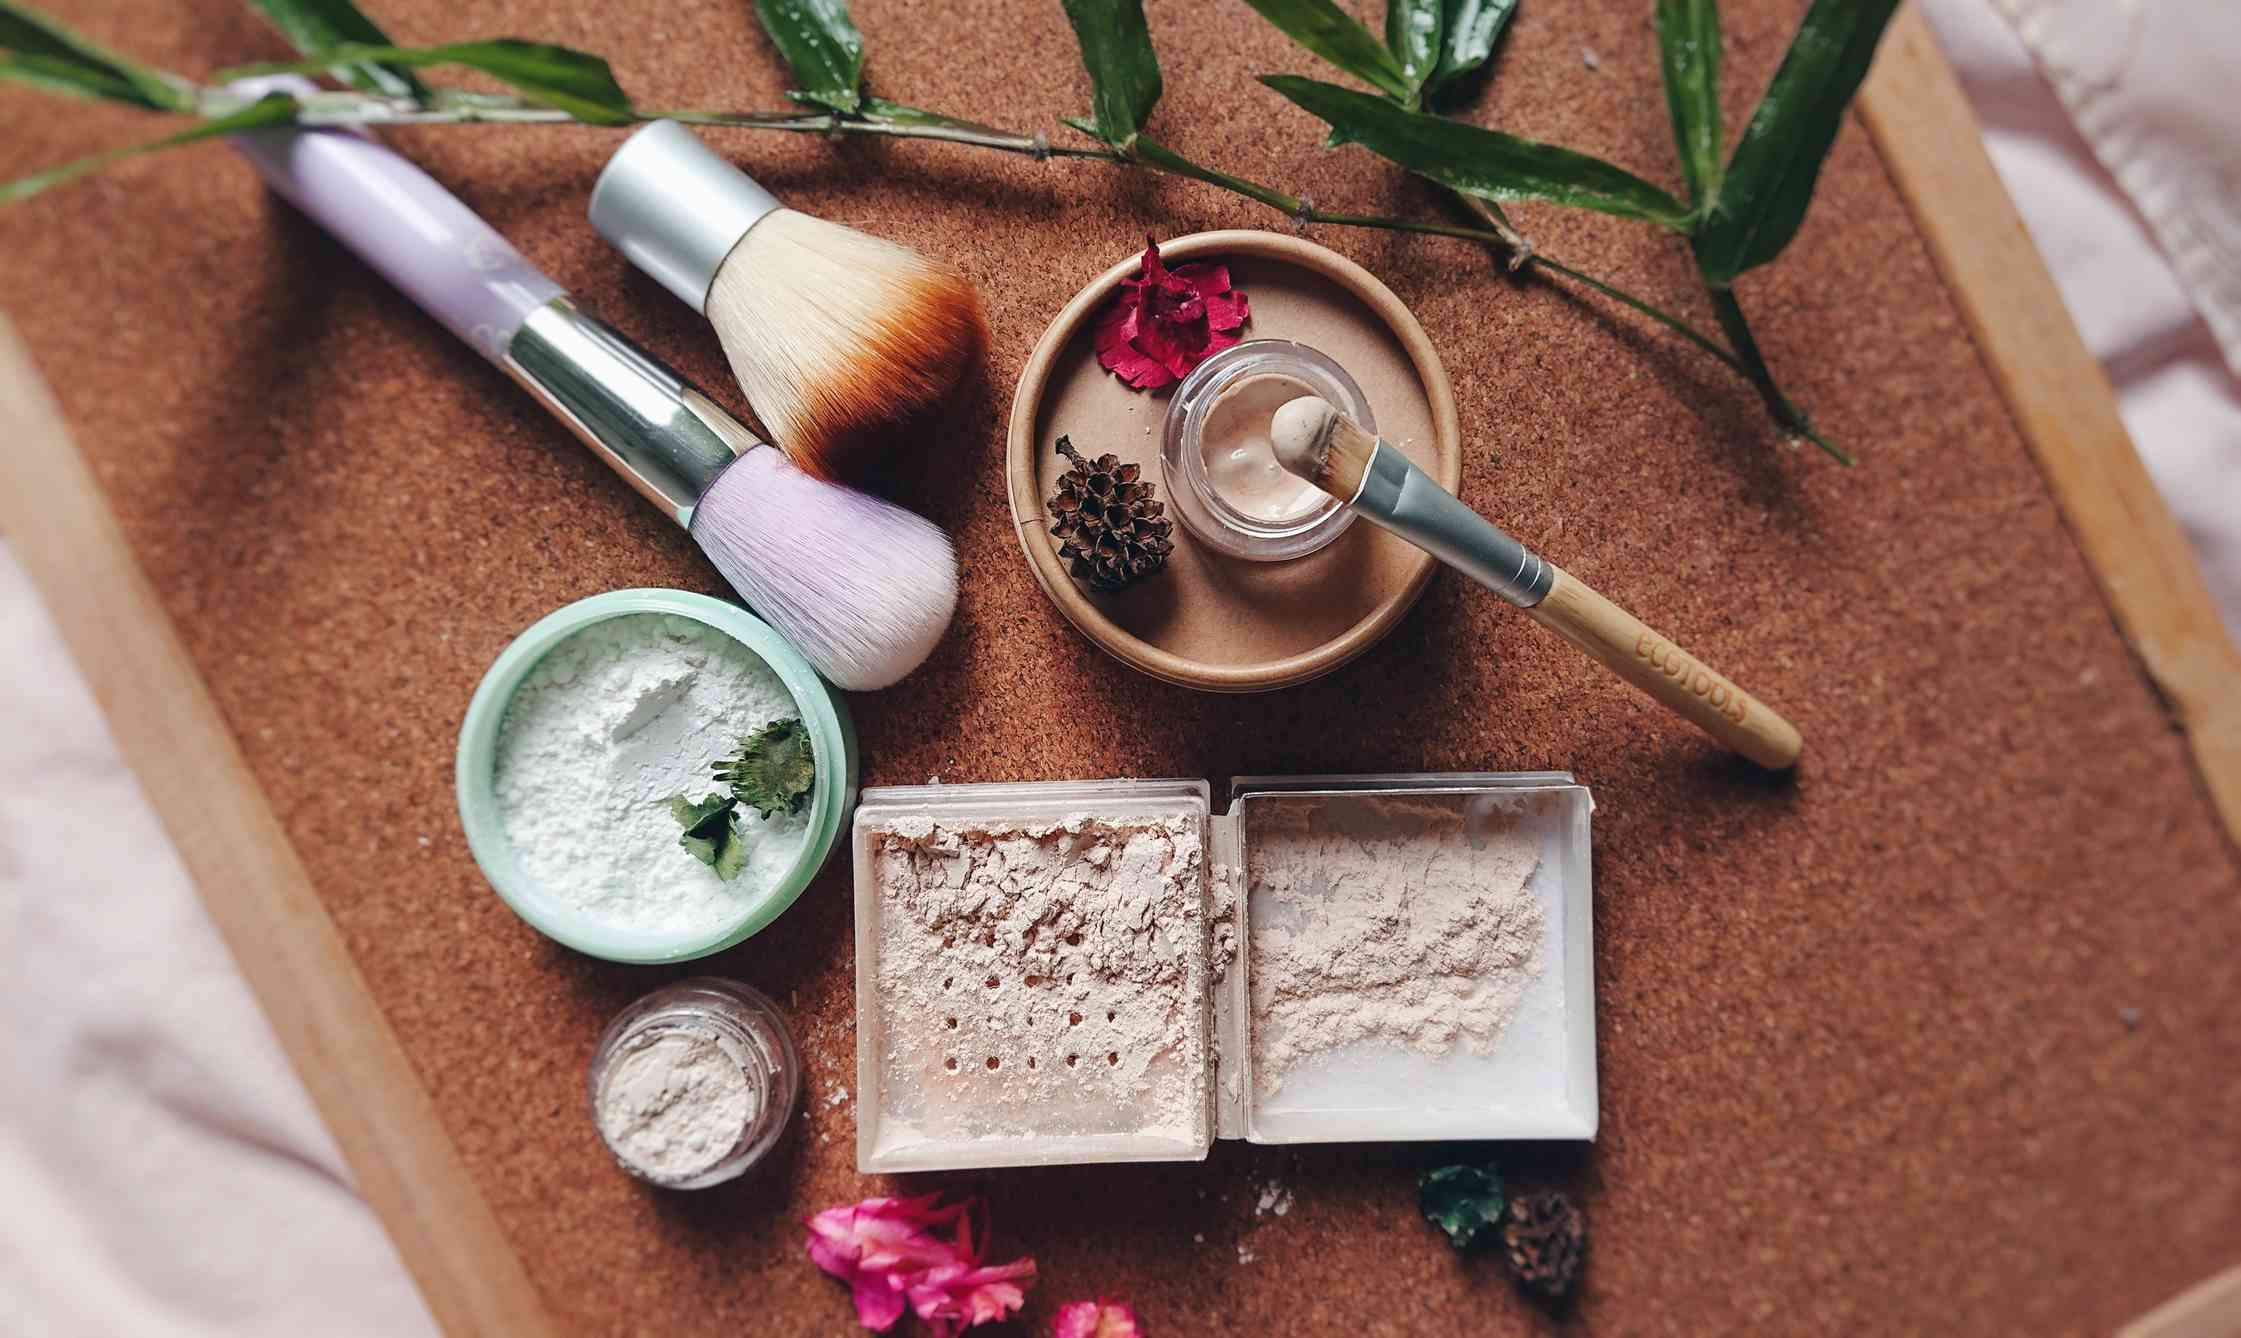 Flat lay of make-up brushes and mineral cosmetics on a towel.